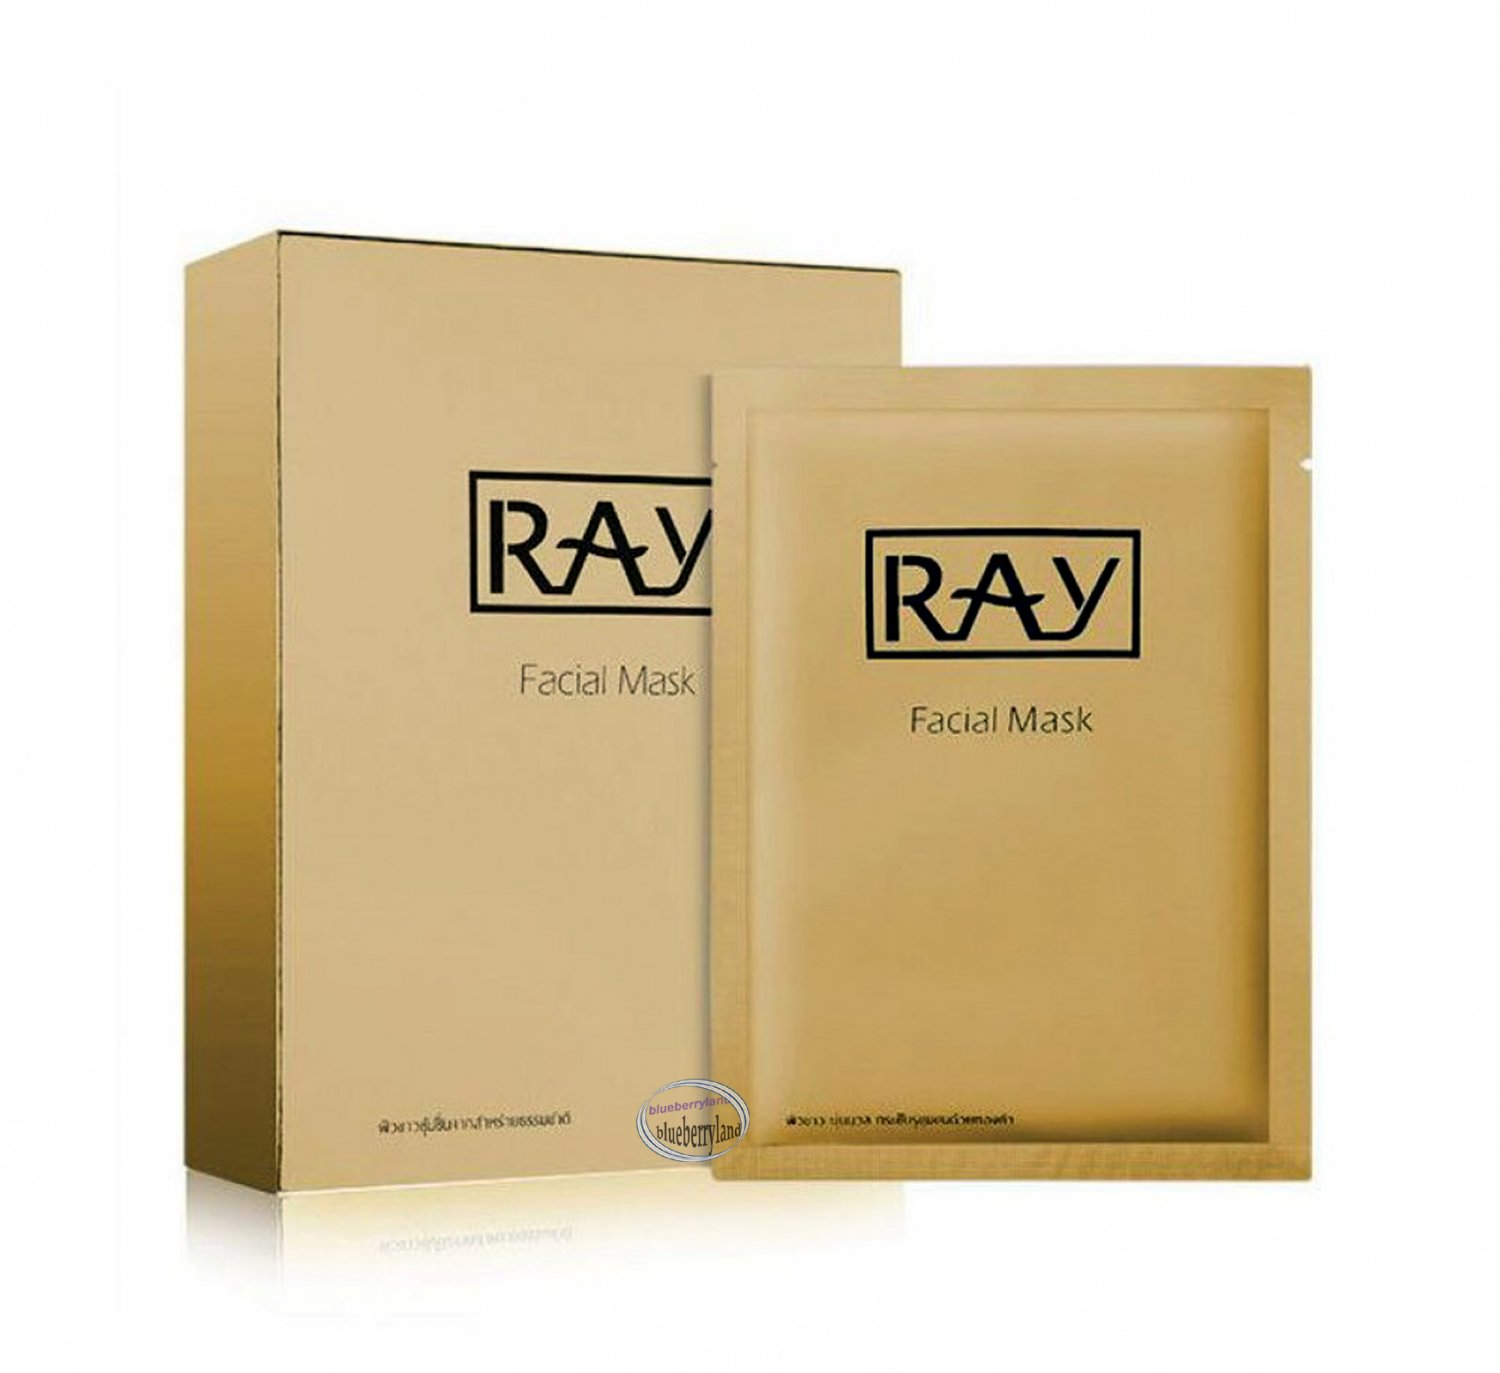 Ray Gold Facial Mask 10 Pcs for for Whitening Brightening Moisturizing Firming  ladies skin care